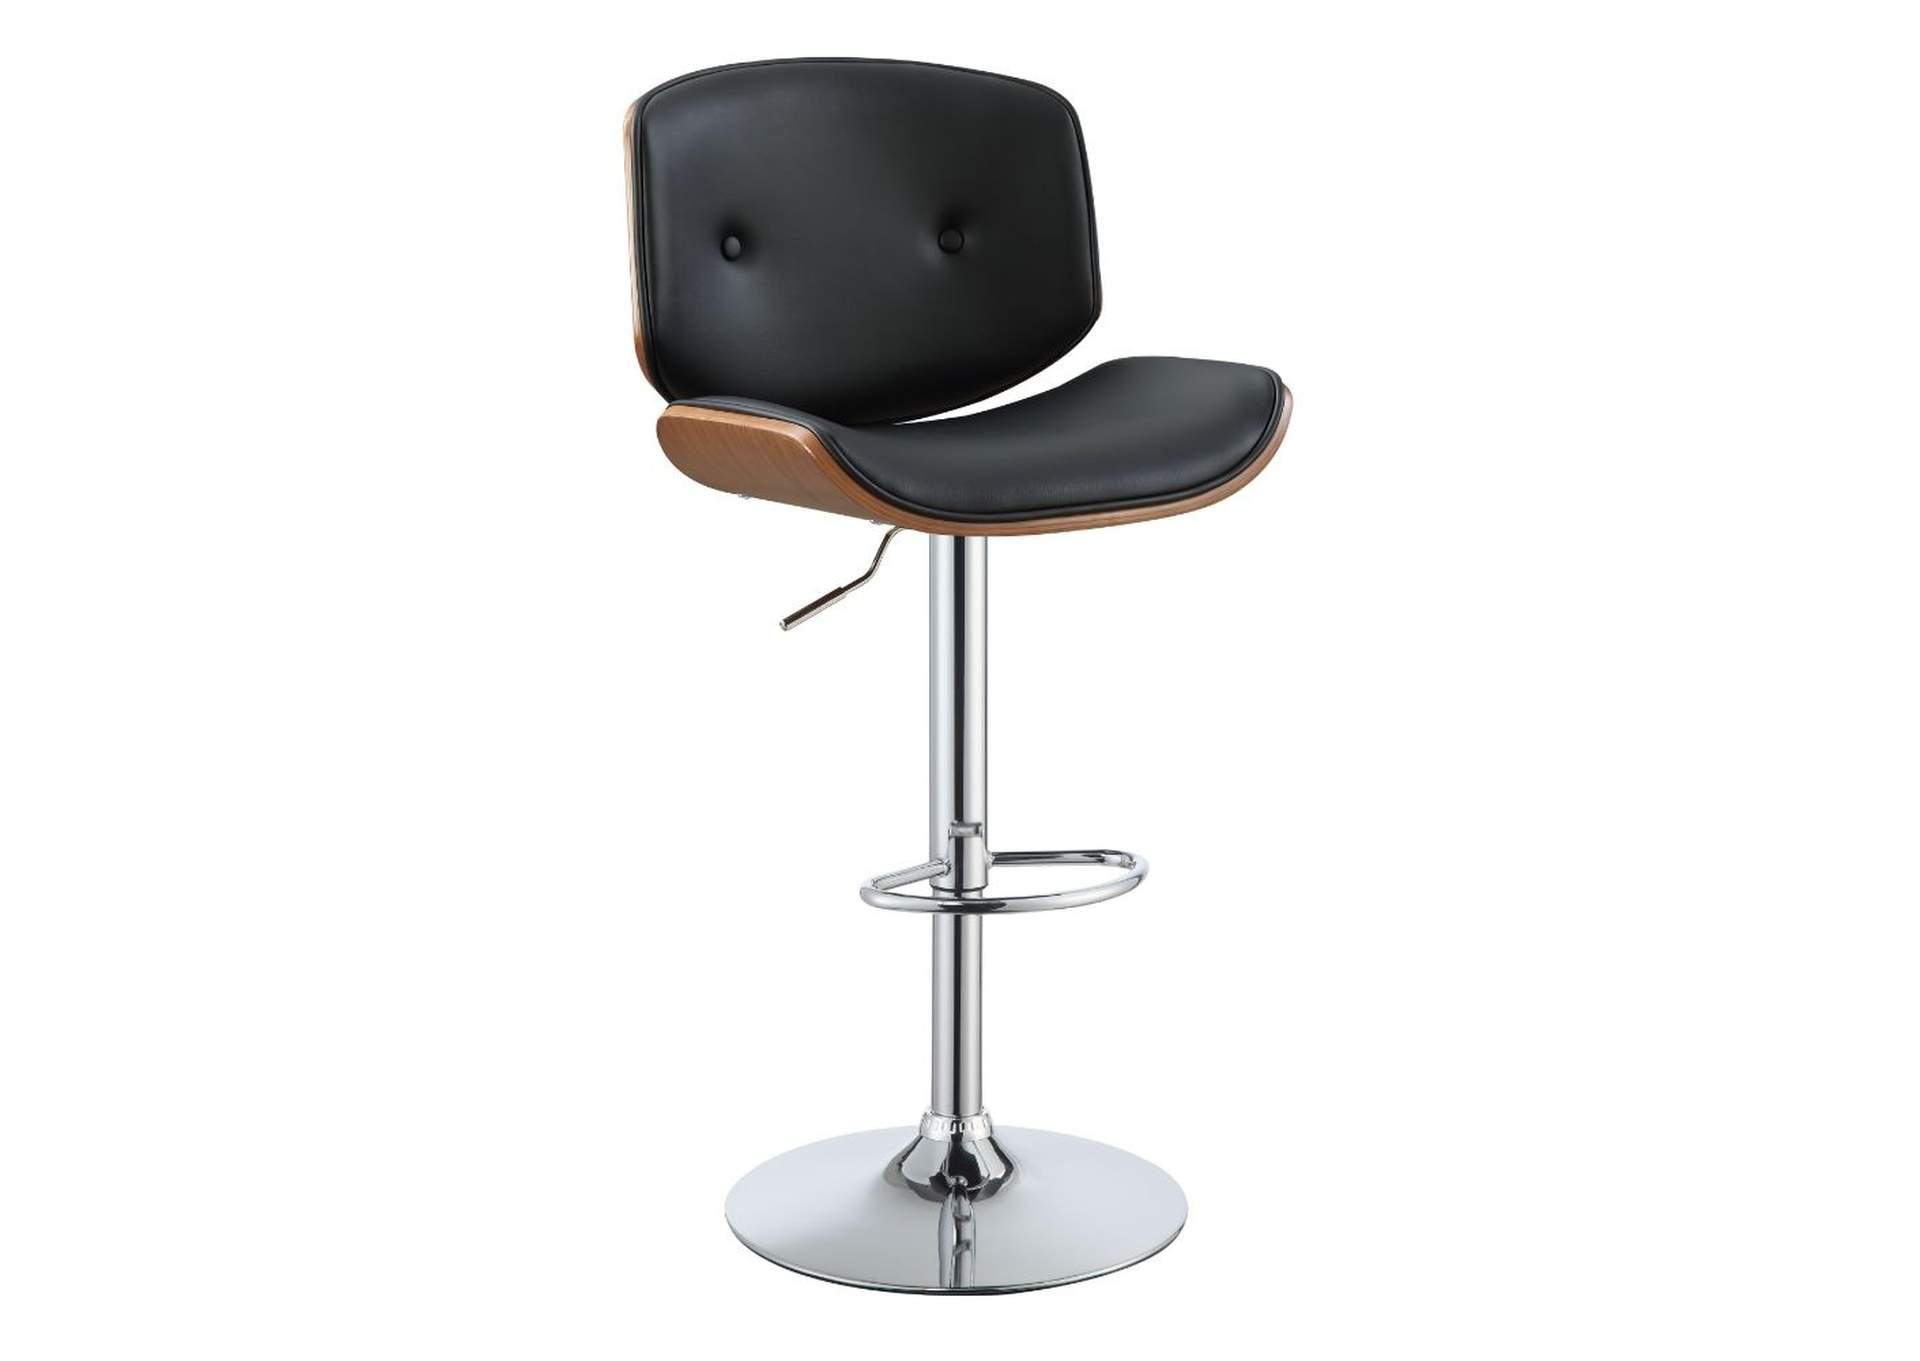 Camila Black Leather Backed Adjustable Stool w/Divets,Acme